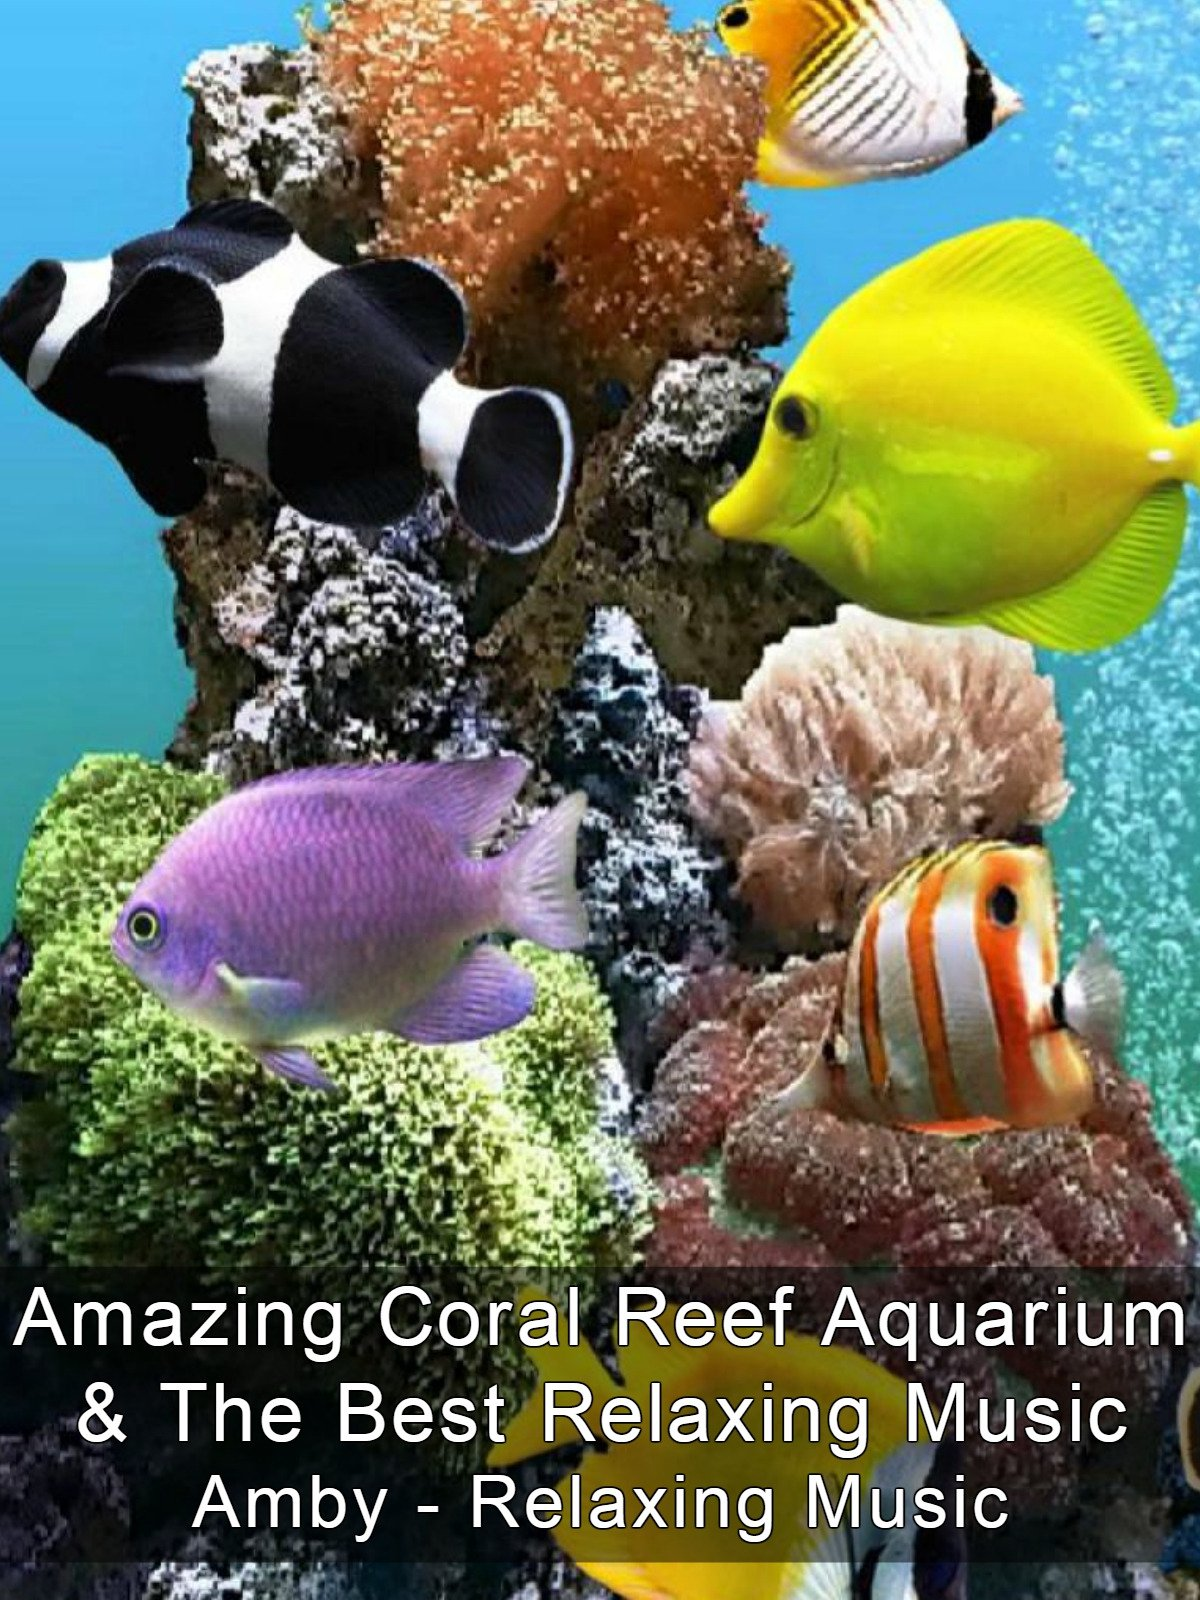 Watch 'Amazing Coral Reef Aquarium & The Best Relaxing Music